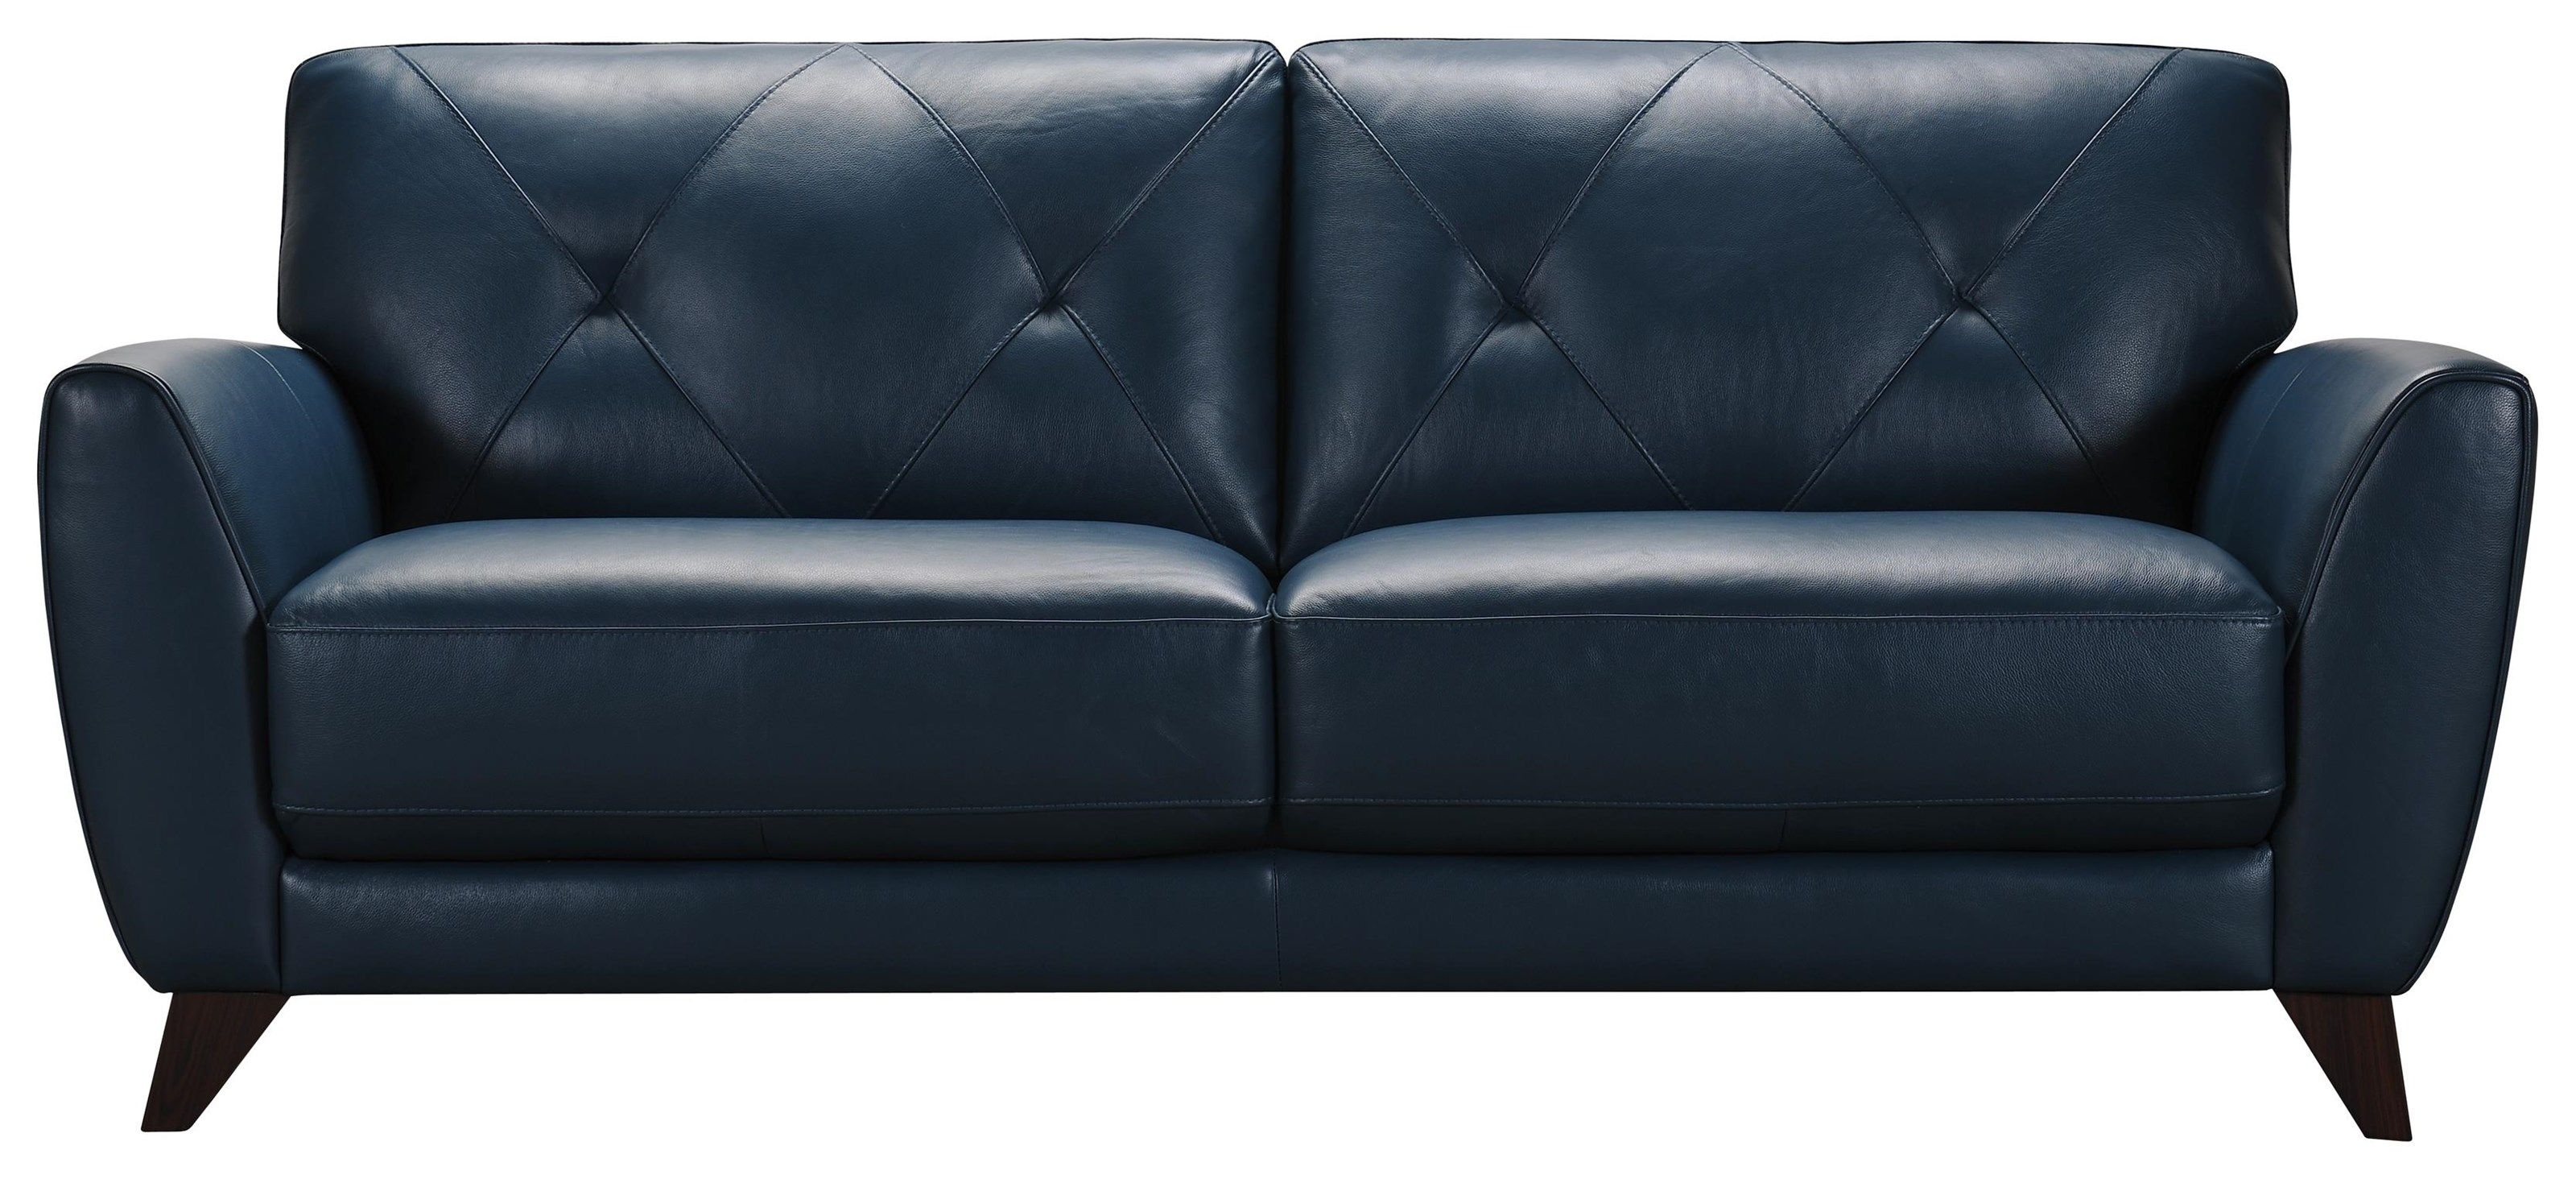 Best 3159 Peacock Blue Leather Sofa By Violino Blue Leather 400 x 300